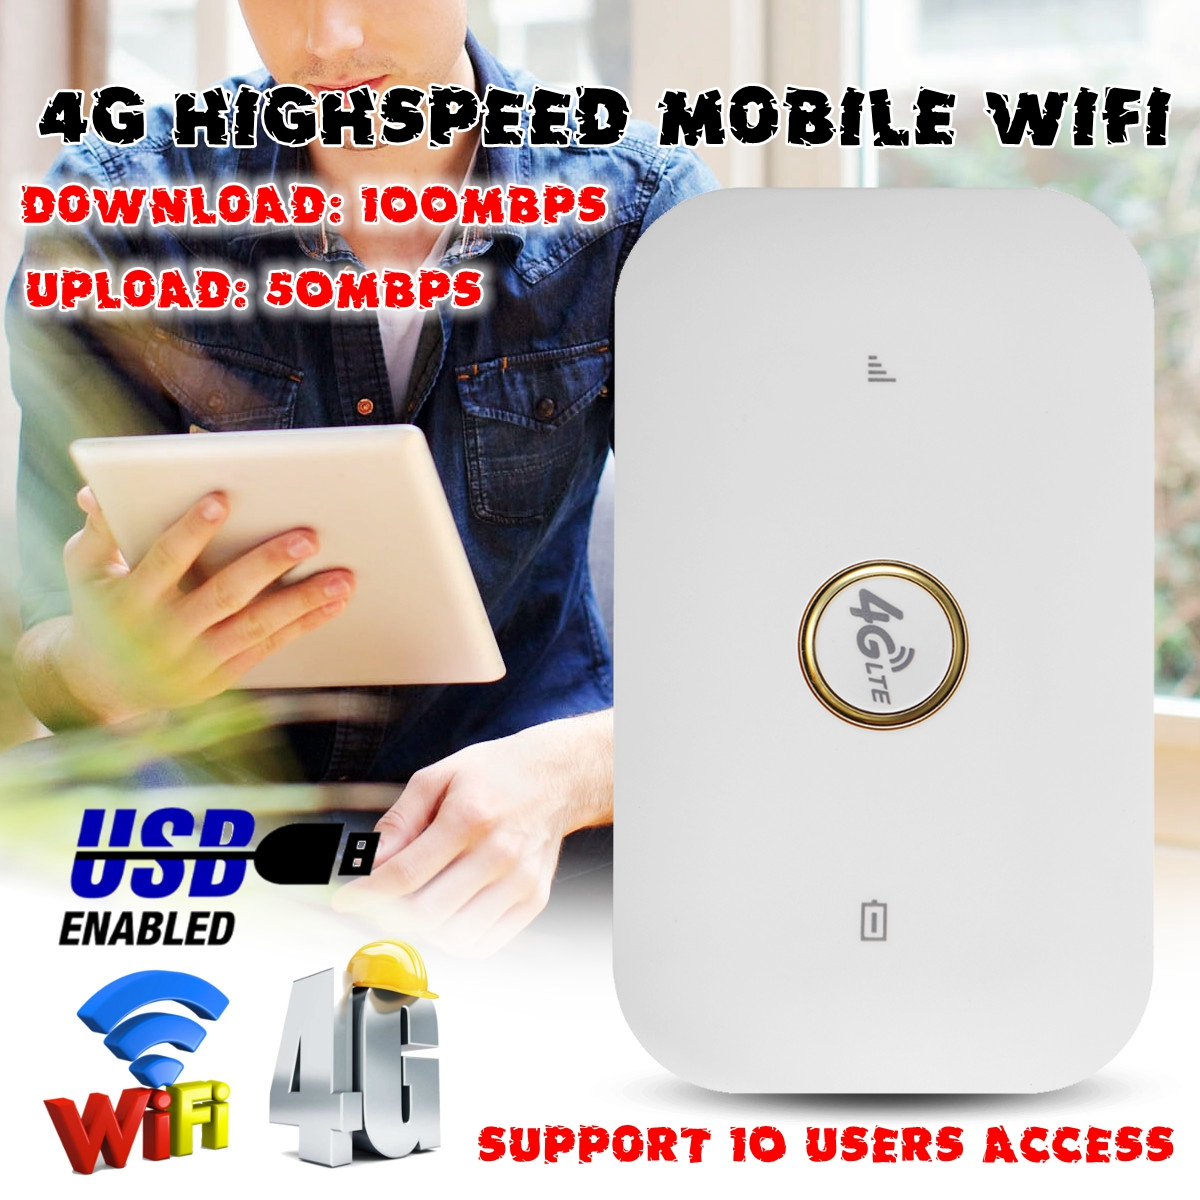 4G LTE cat3 Mobile WiFi Wireless P ocket Hotspot Portable Router Modem for Outdoor Sport Travel Business Trip 4g lte mobile wifi wireless router hotspot led lights supports 10 users portable router modem for car home mobile travel camping